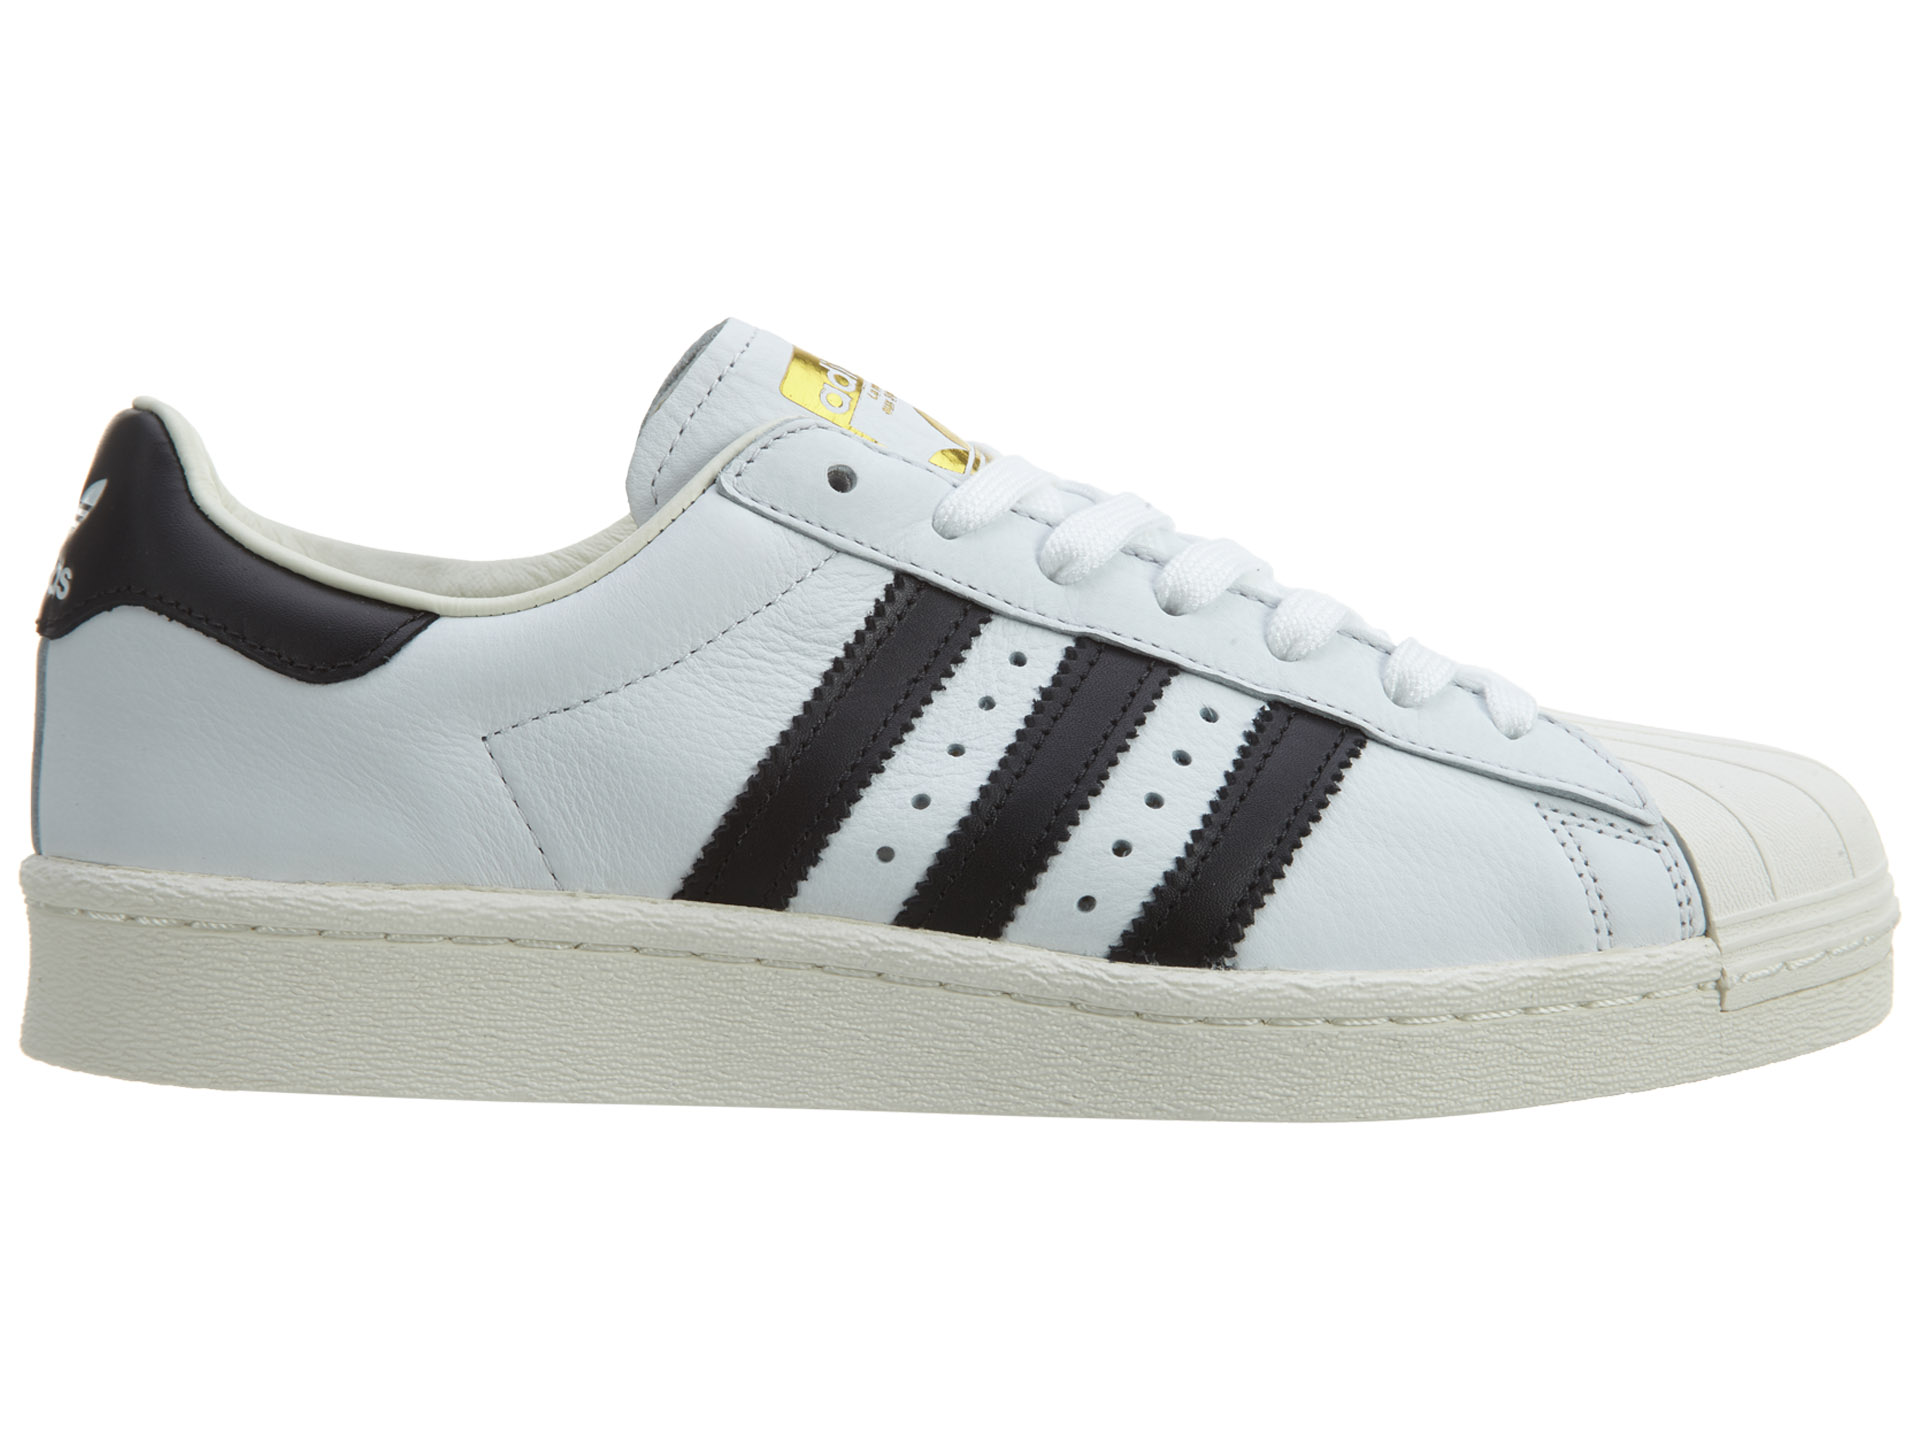 adidas Superstar White/Black/Gold Metallic